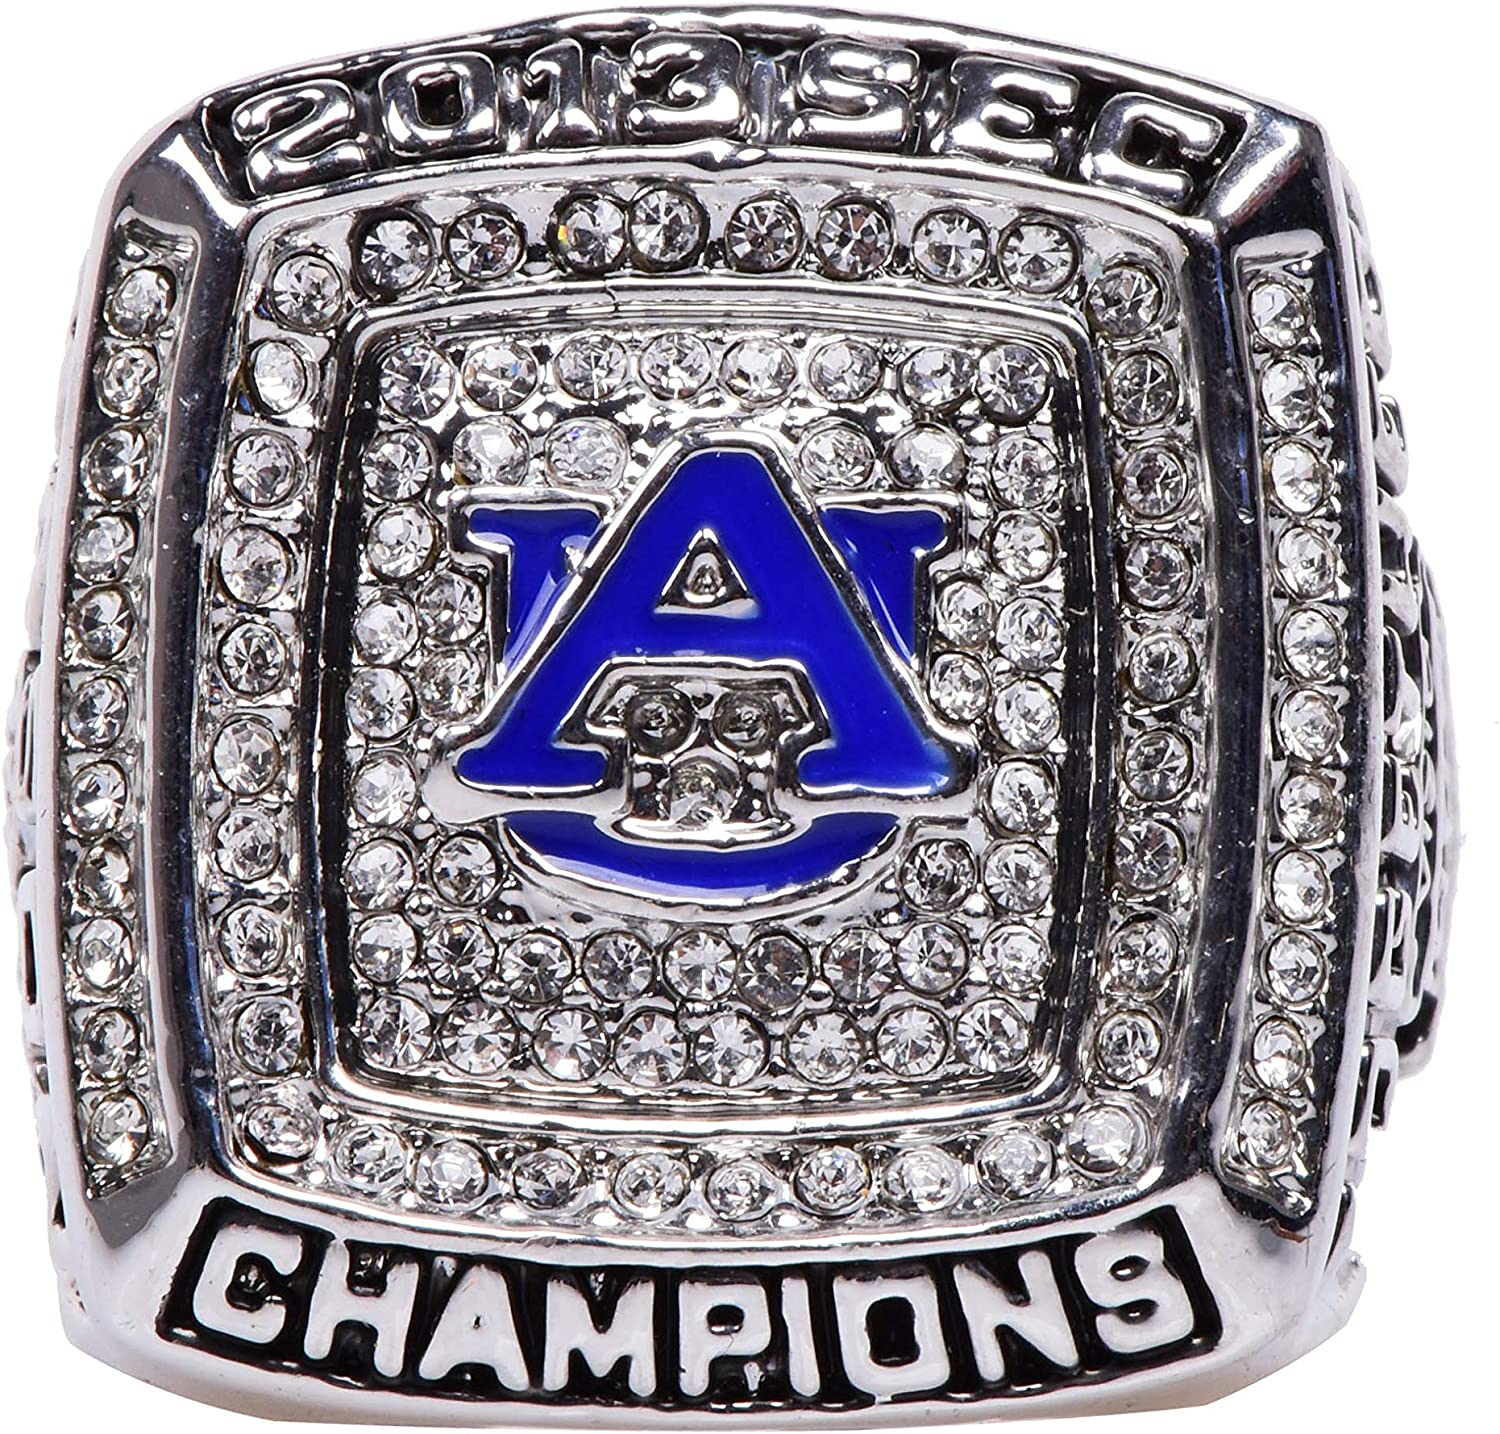 GF-sports store 2013 Auburn Tigers Championship Ring Collectible Jewelry (Without Box)